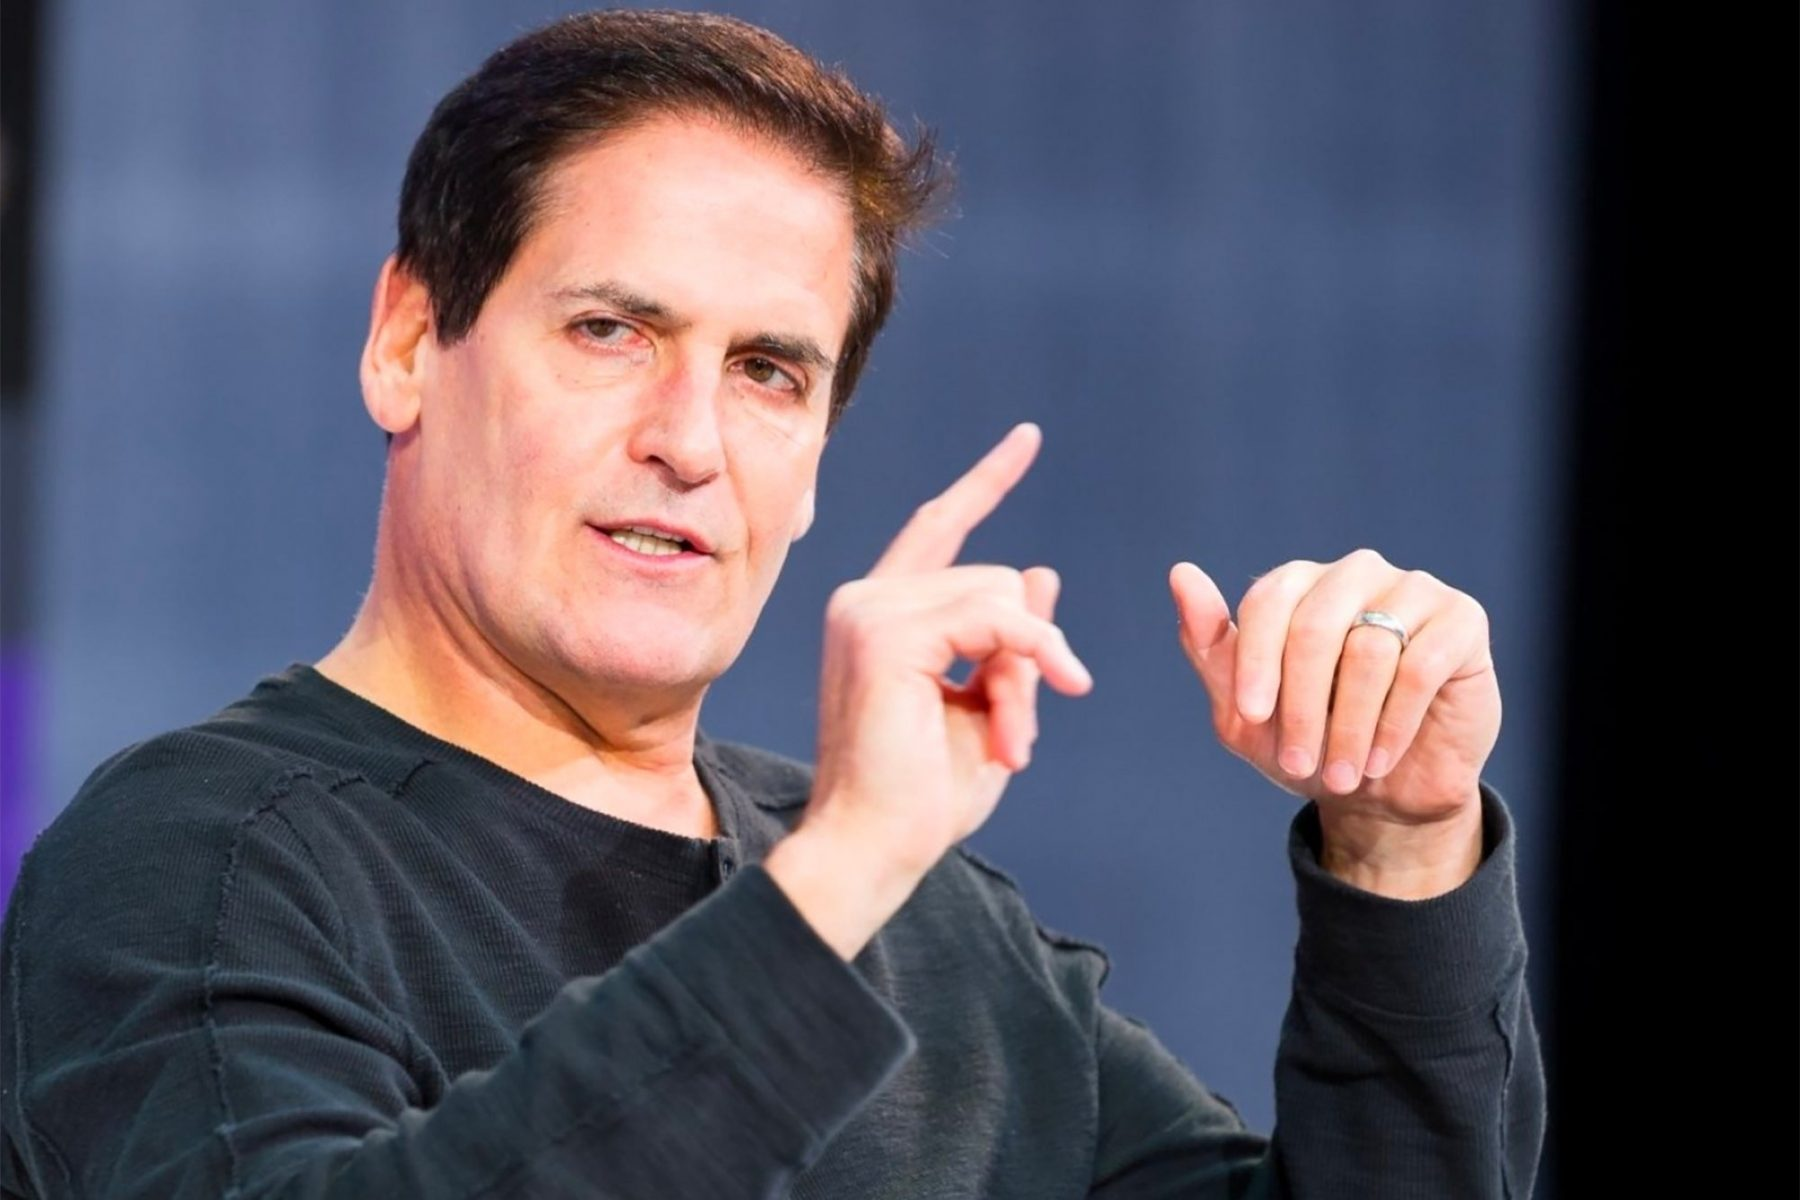 mark-cuban-slams-sec-chief-gary-gensler-for-complex-market-rules-–-and-tells-him-to-engage-with-retail-investors